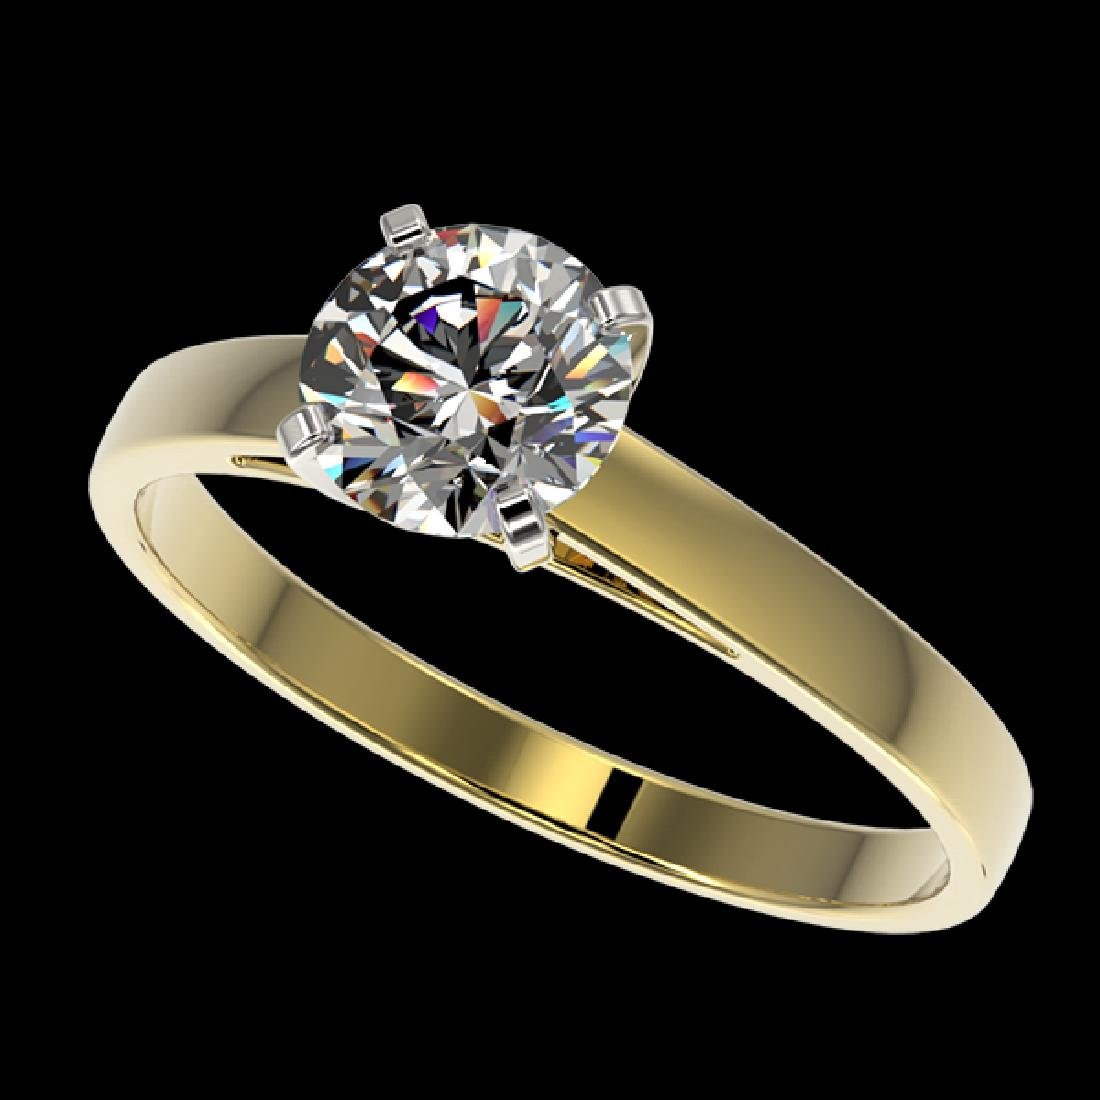 1.07 CTW Certified G-Si Quality Diamond Solitaire